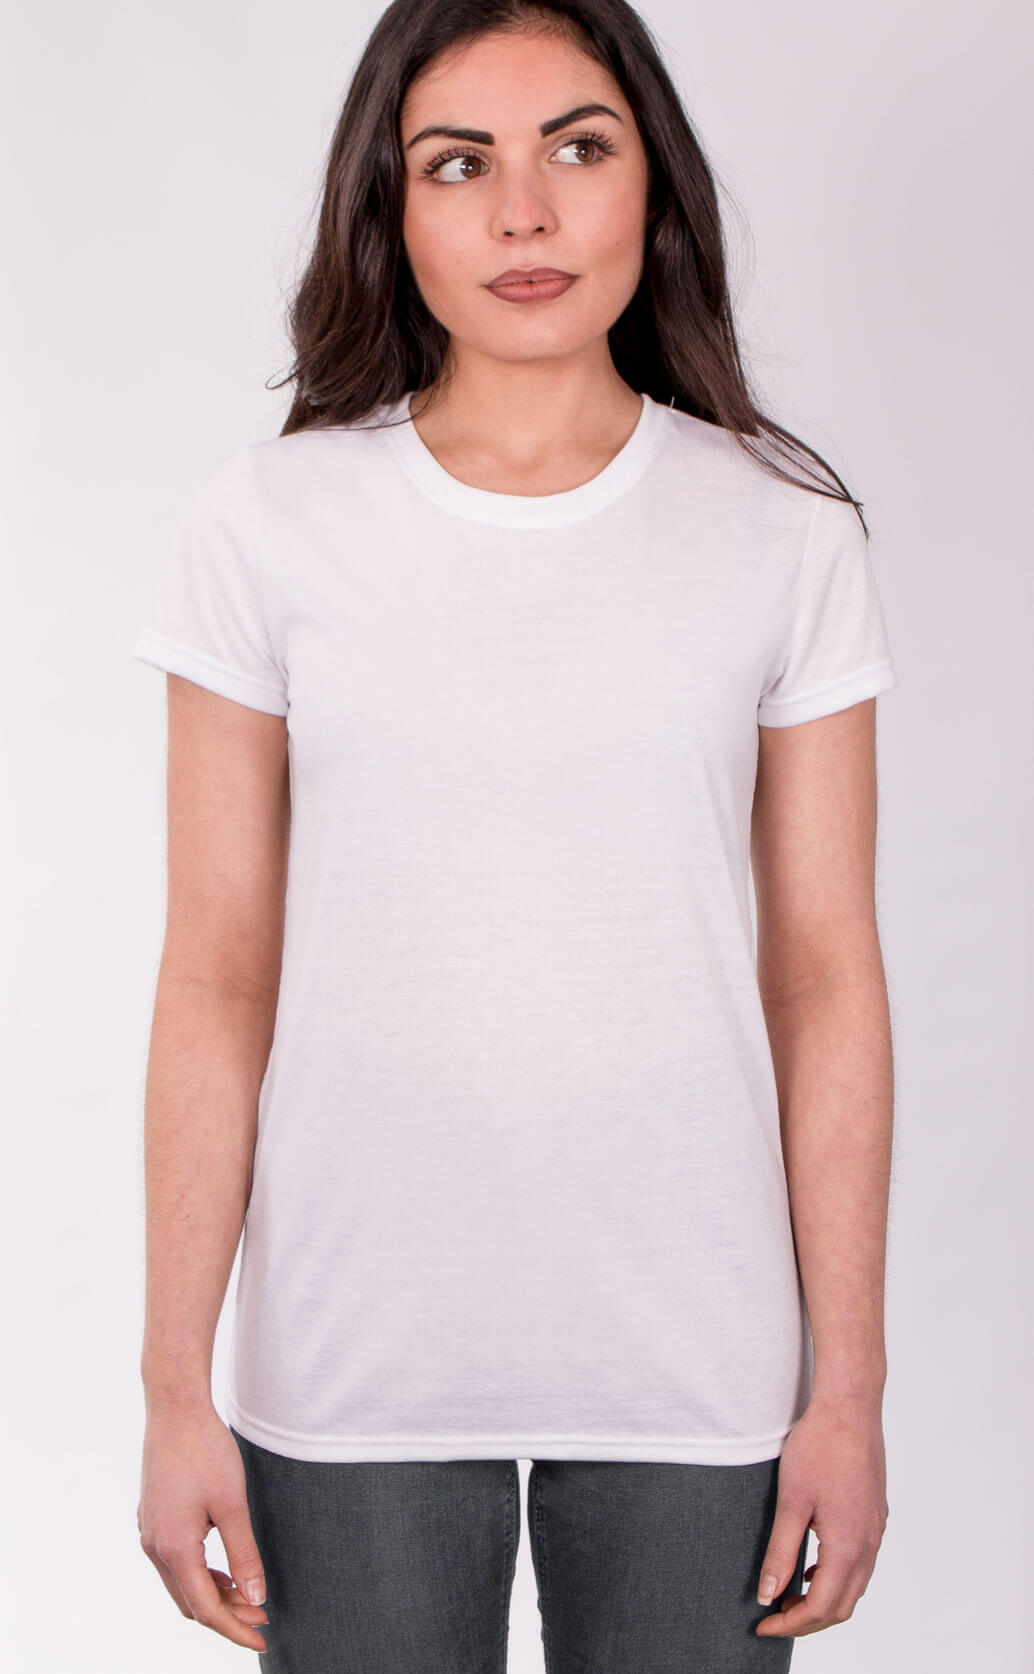 Size guide image for Lady Sub shirt type. Model is dressed in white t shirt and dark jeans